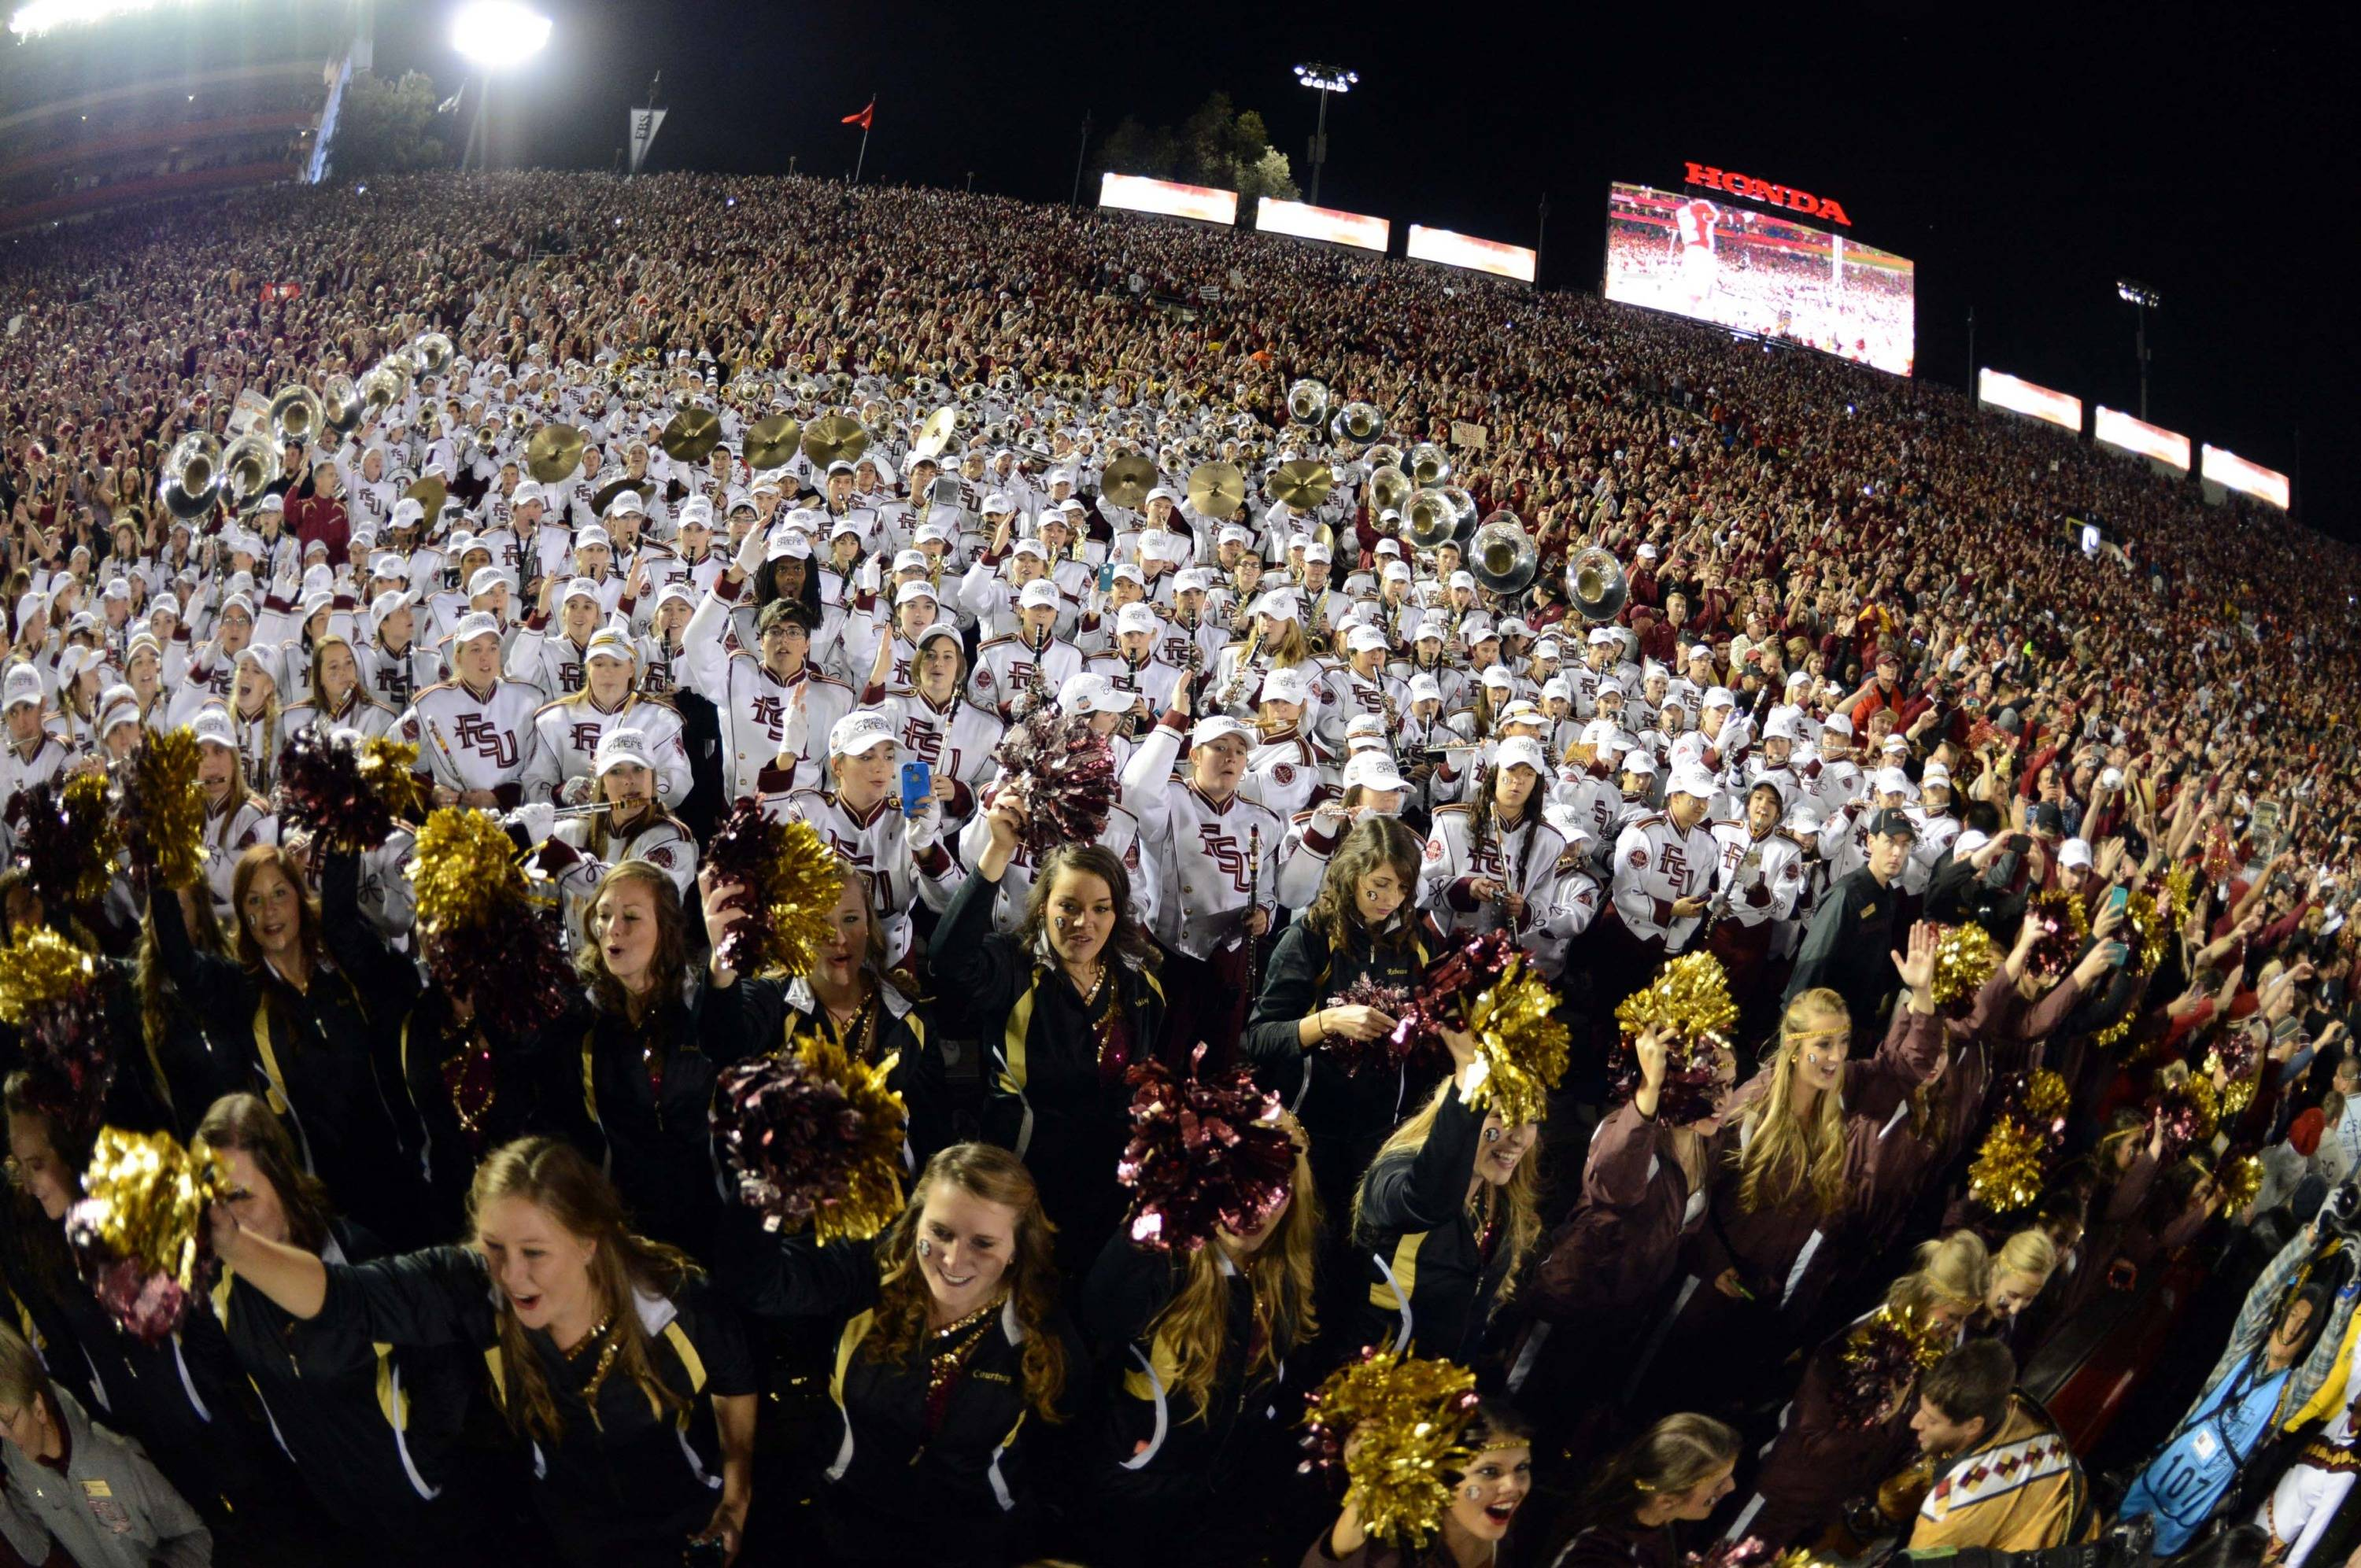 Jan 6, 2014; Pasadena, CA, USA; Florida State Seminoles band after the 2014 BCS National Championship game against the Auburn Tigers at the Rose Bowl.  Mandatory Credit: Jayne Kamin-Oncea-USA TODAY Sports